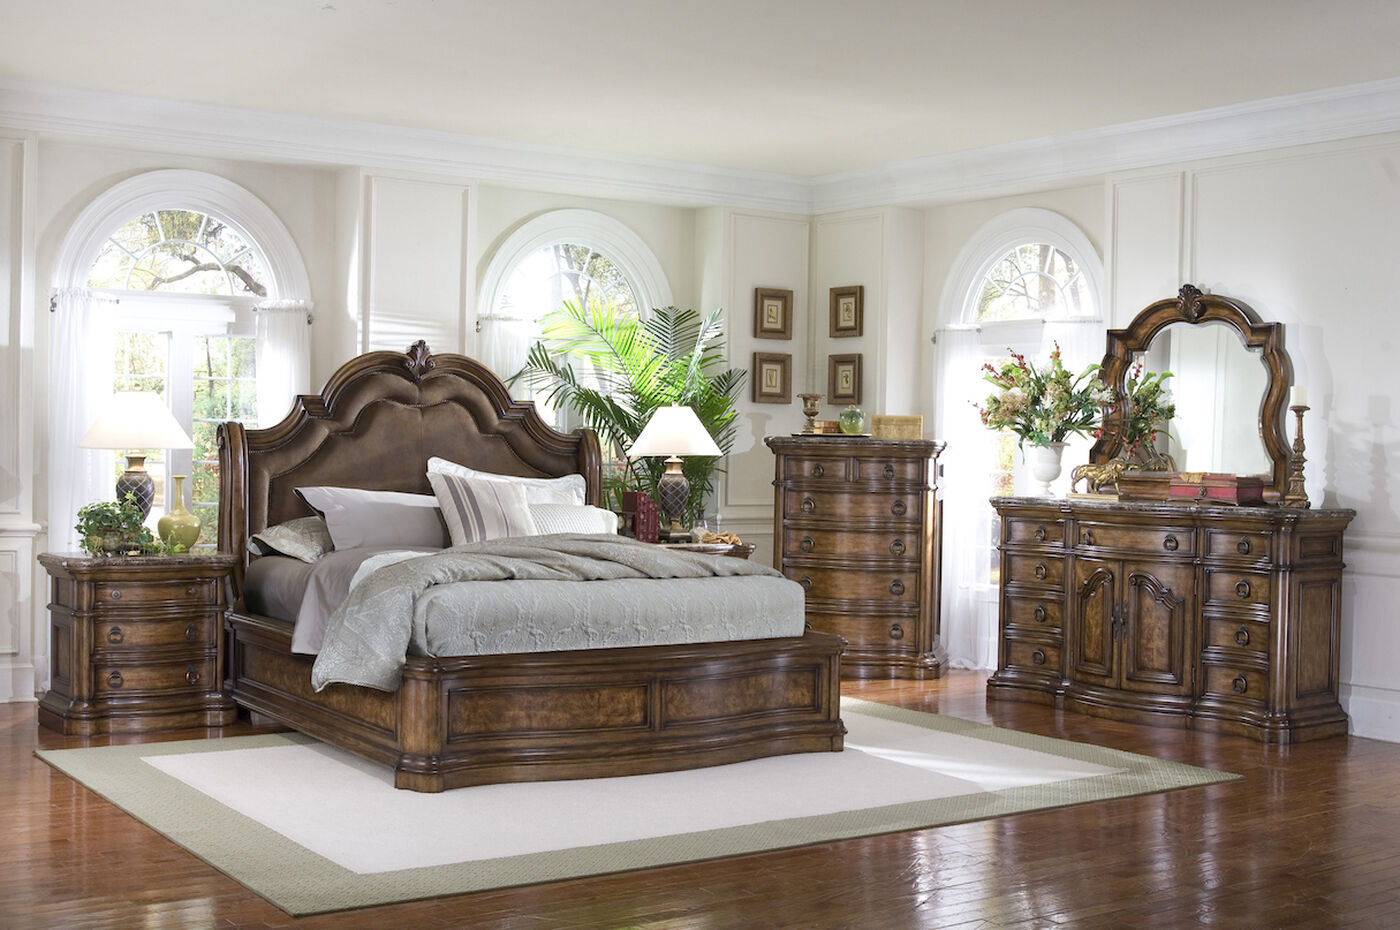 Pulaski Bedroom Furniture Pulaski San Mateo Sleigh Bed Mathis Brothers Furniture